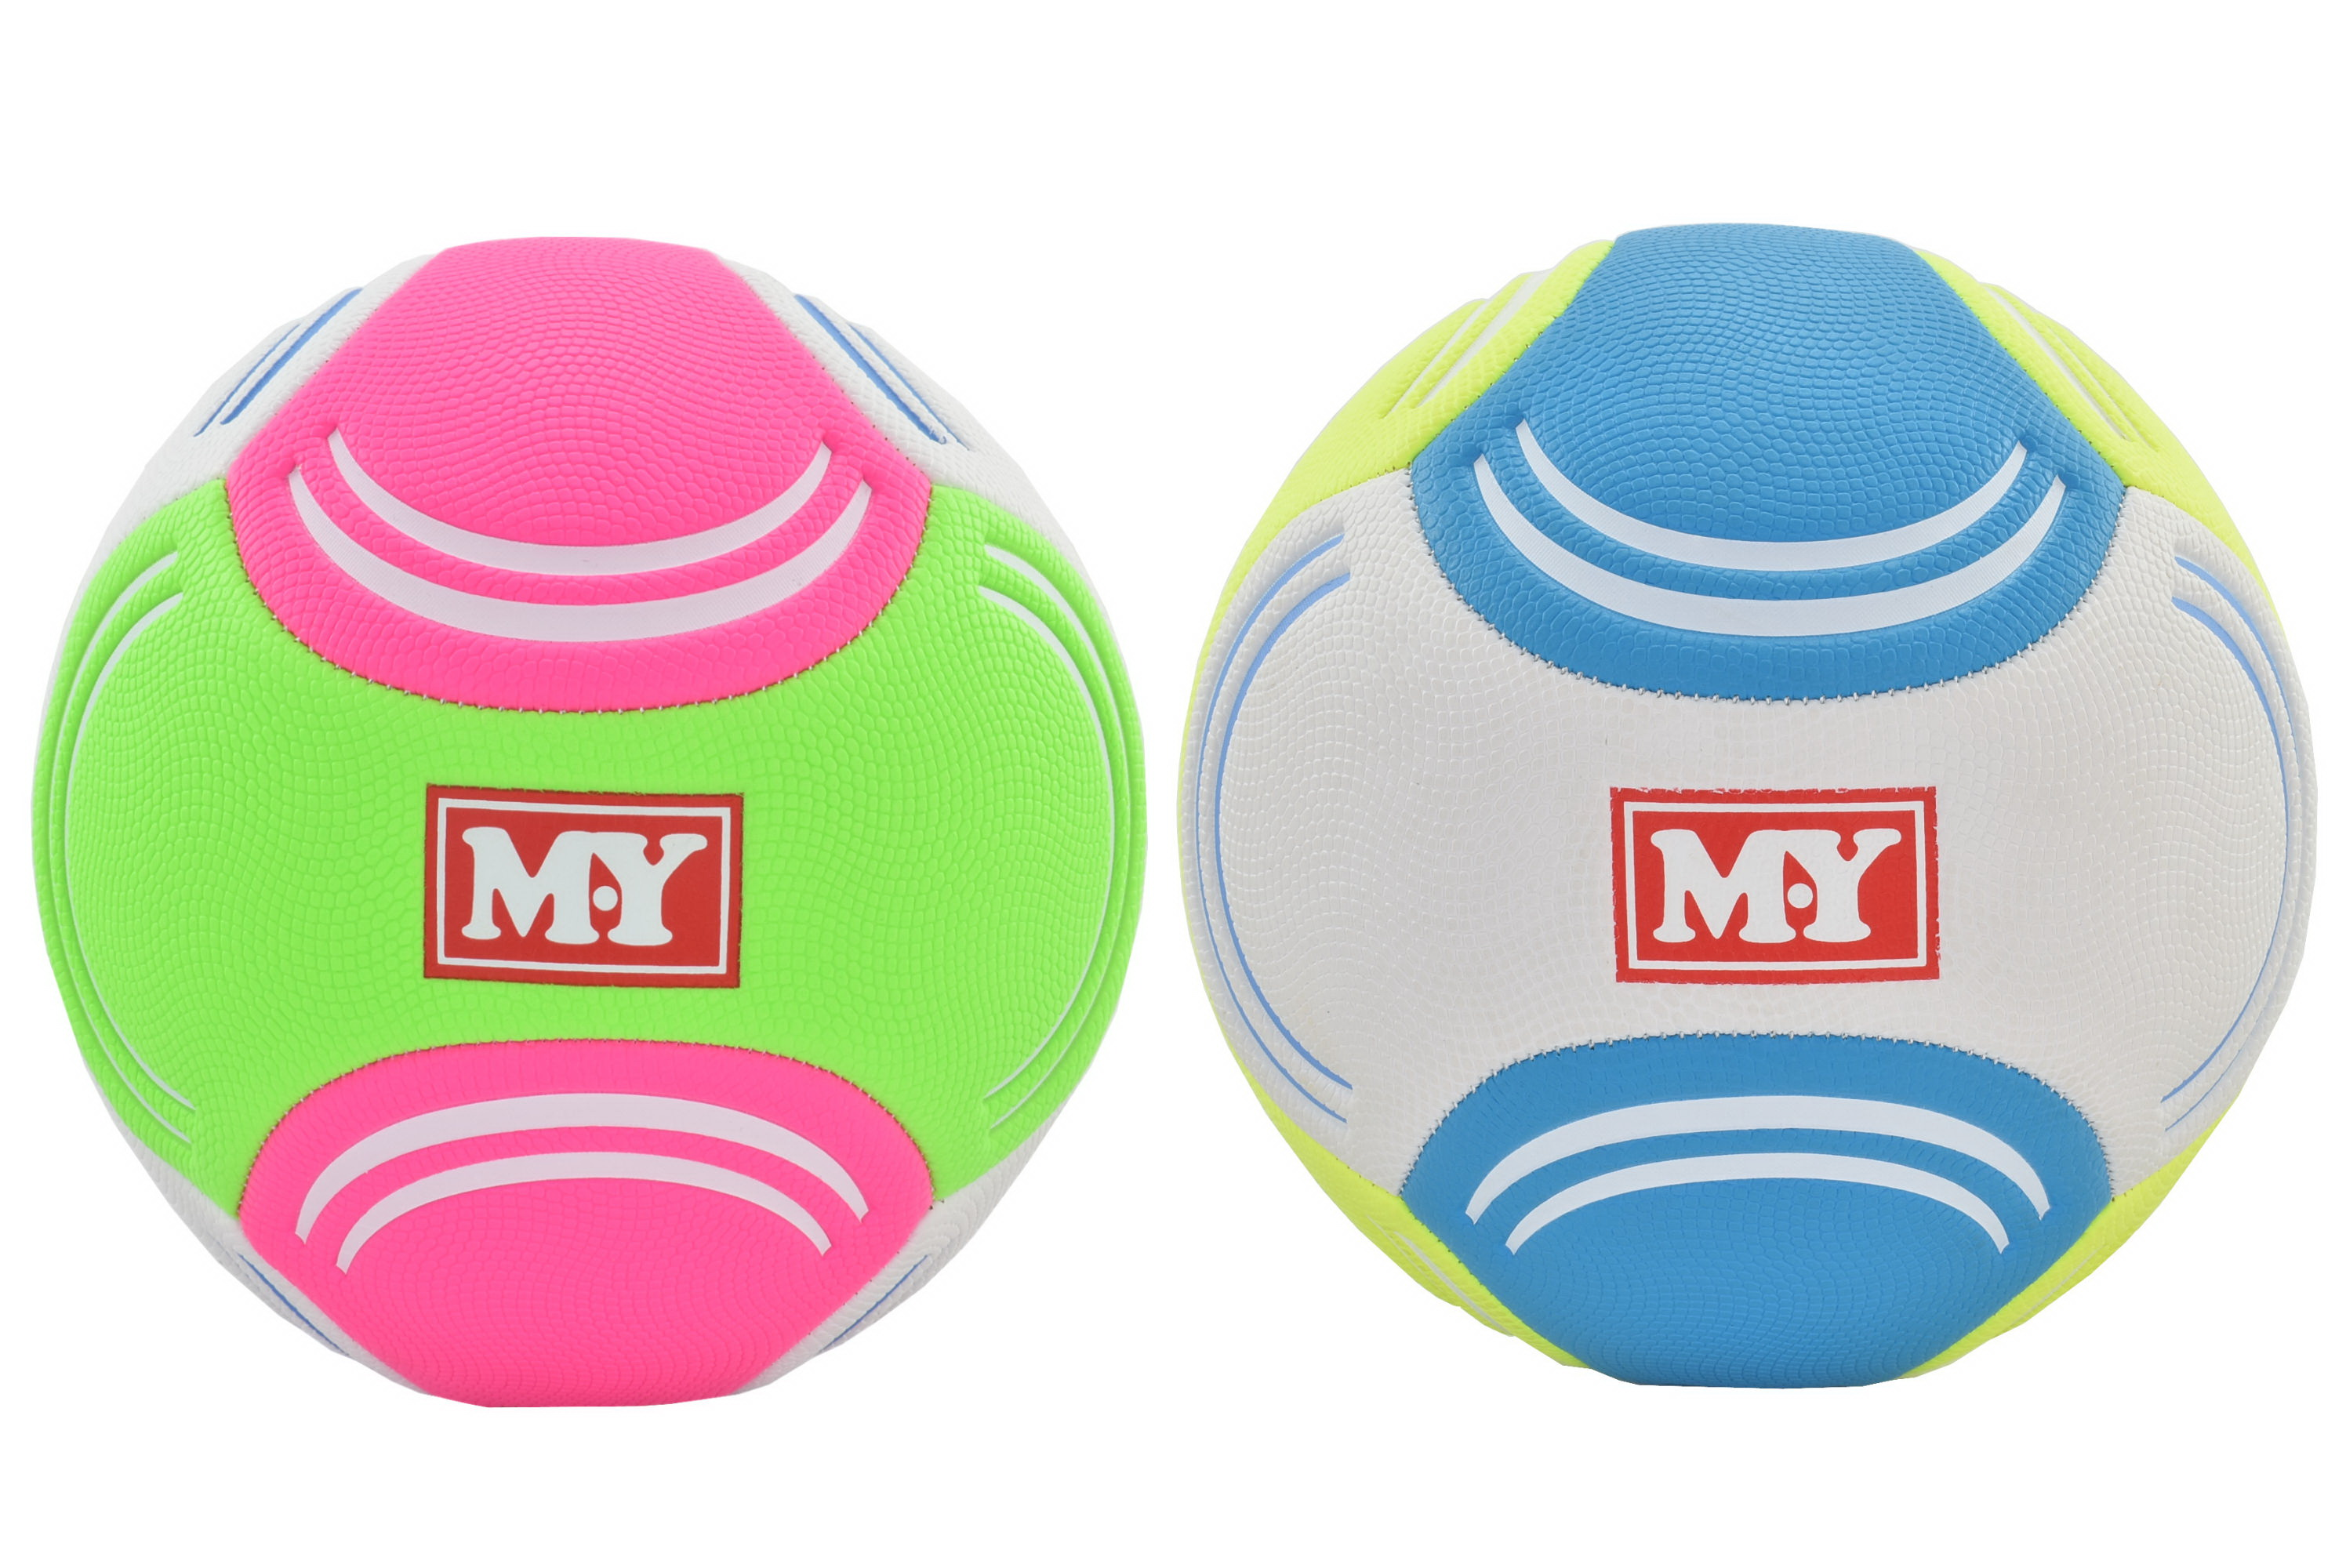 "Size 5 Soft Touch Beach Soccer 340g - 2 Asst Cols ""M.Y"""